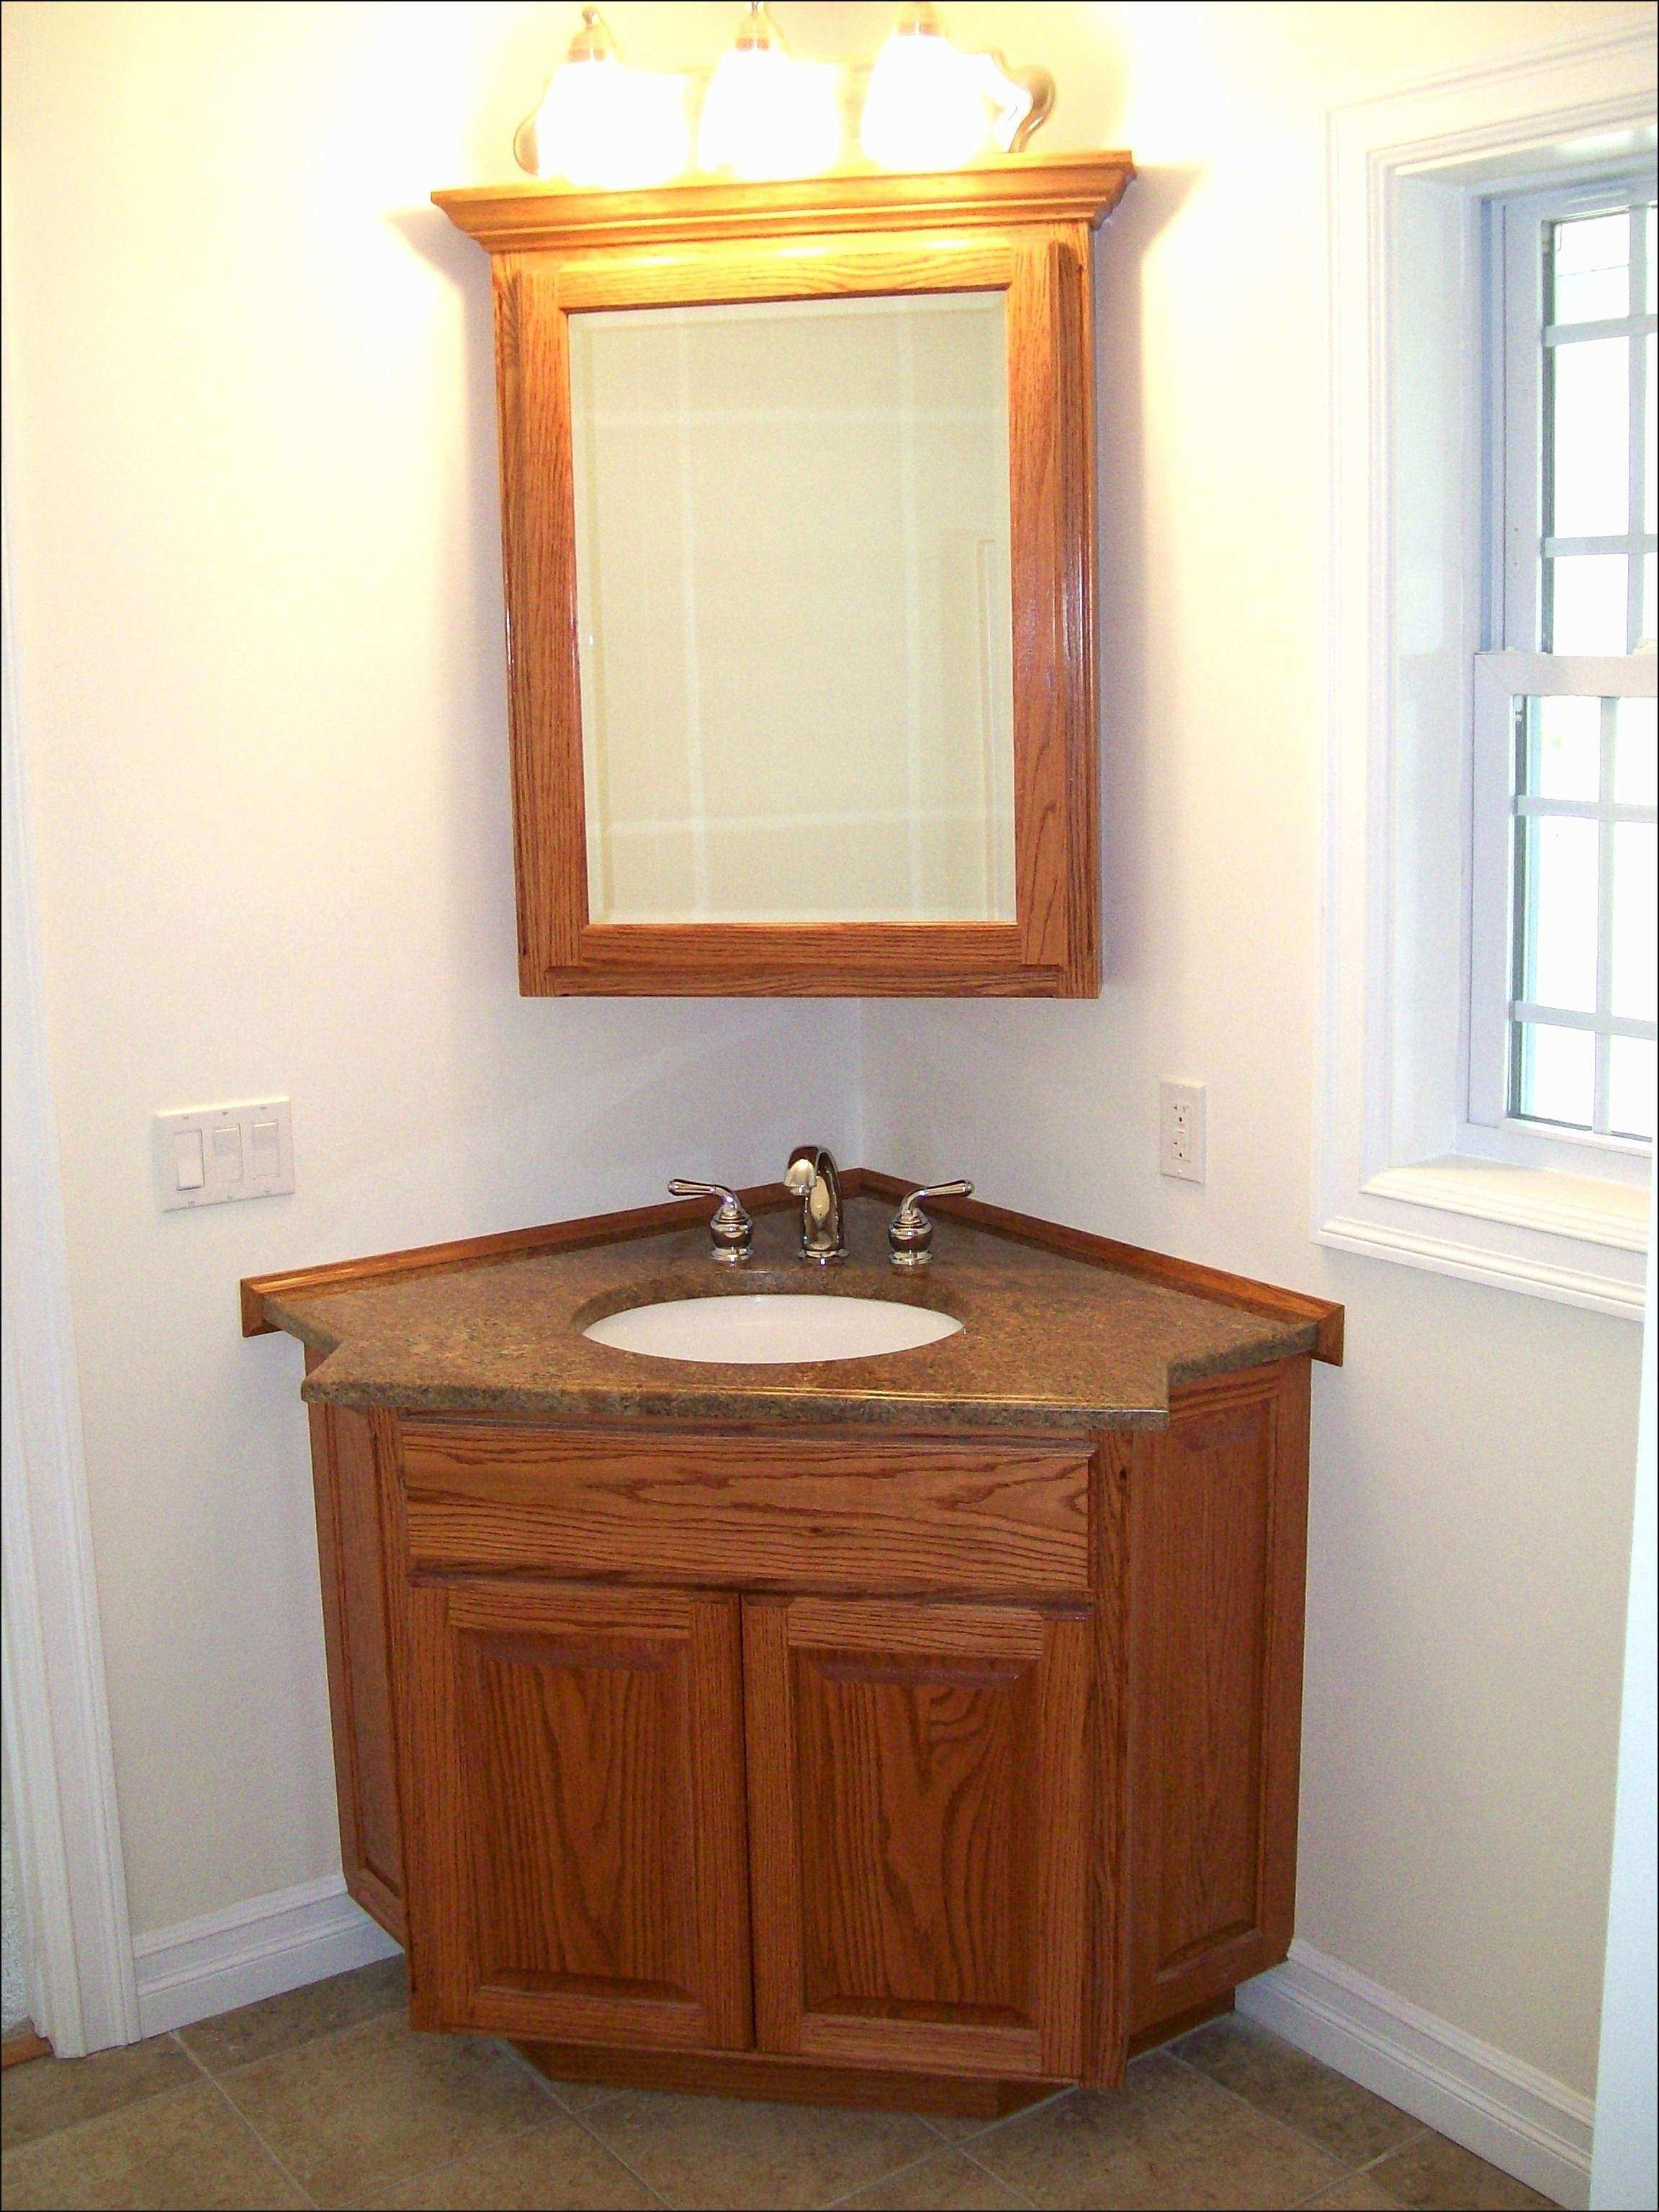 Home Tiny Bathroom Sink Awesome Awesome L Biscuit Wall Mount Sink